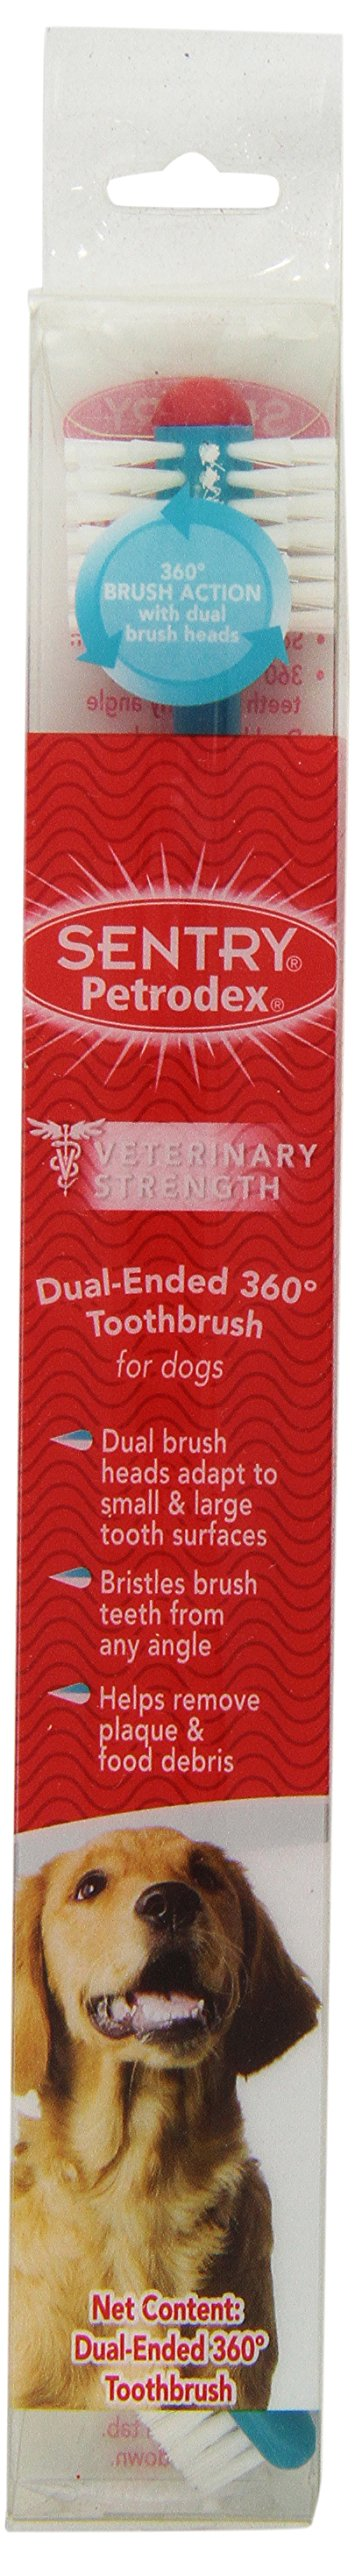 Sentry Petrodex VS Dog Toothbrush 360 Dual Ended